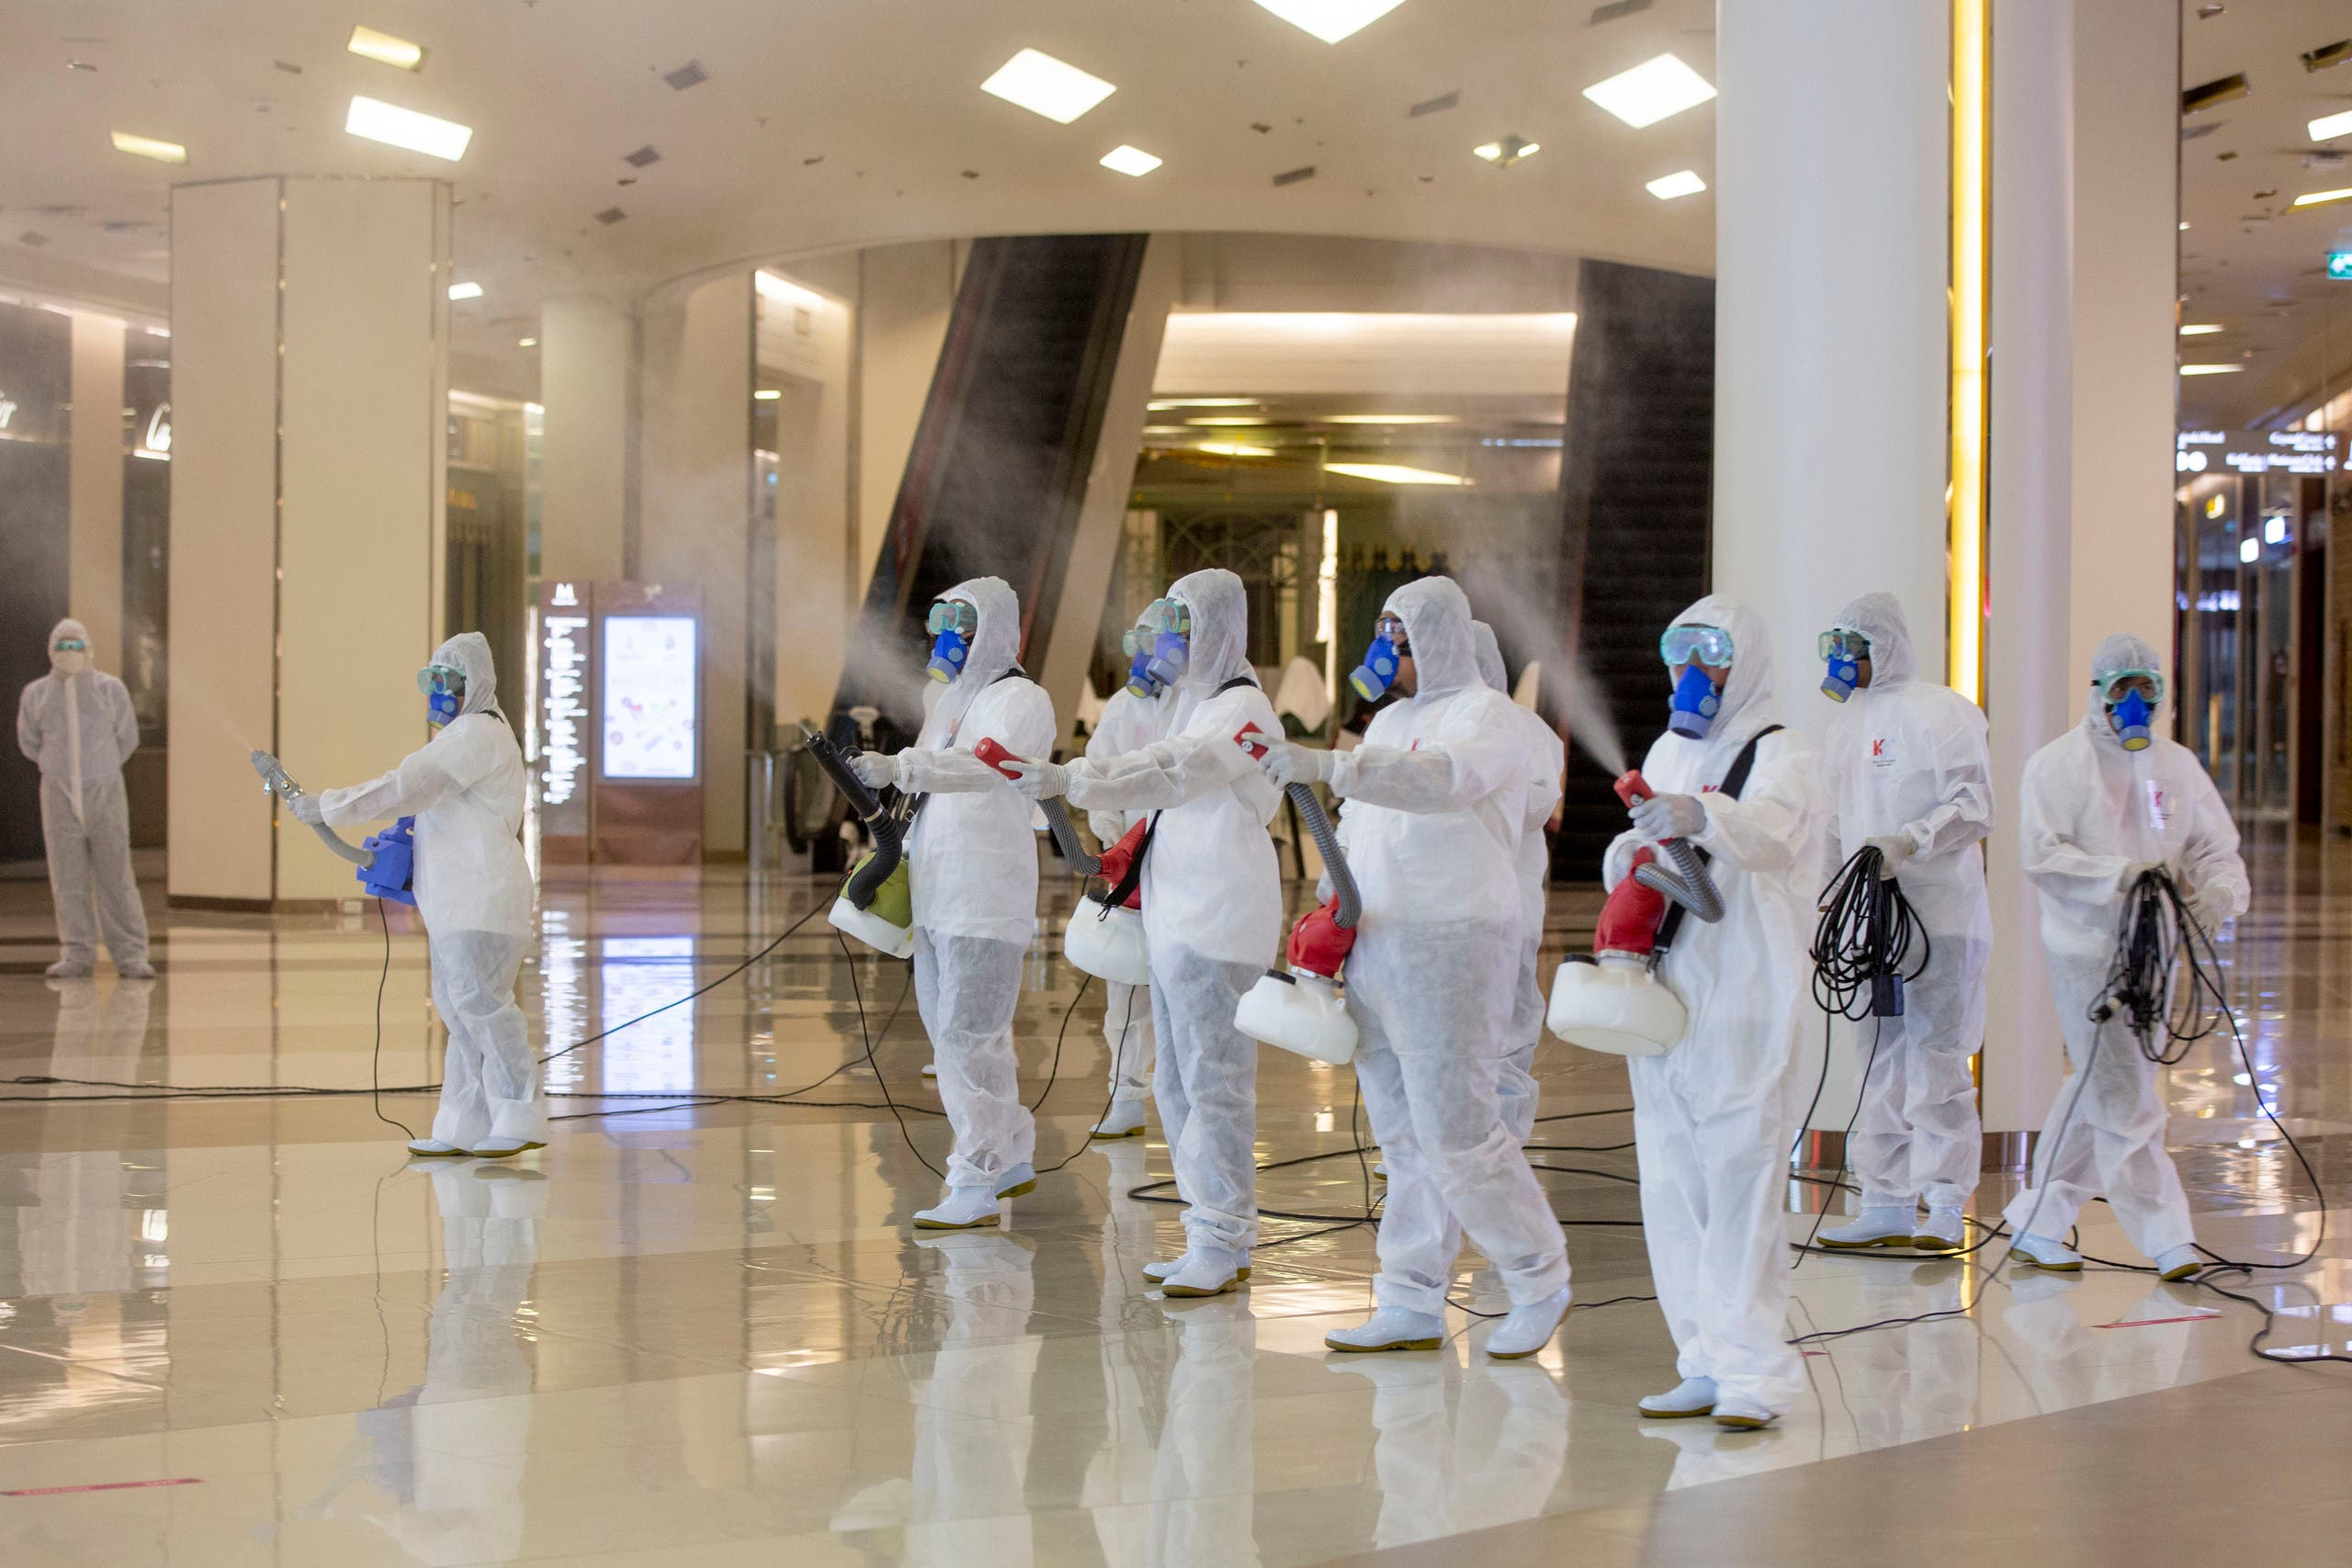 Cleaners in hazmat suits demonstrate disinfection at Siam Paragon, an upmarket shopping mall in Bangkok, Thailand, on Thursday, May 14, 2020. (AP)